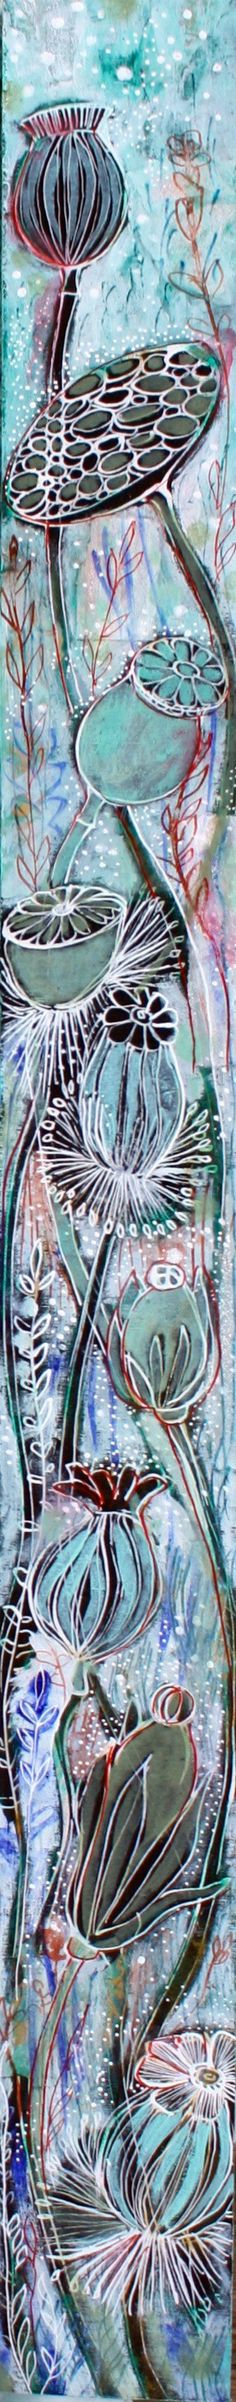 Winter Garden Slice- Original mixed media painting by Maria Pace-Wynters